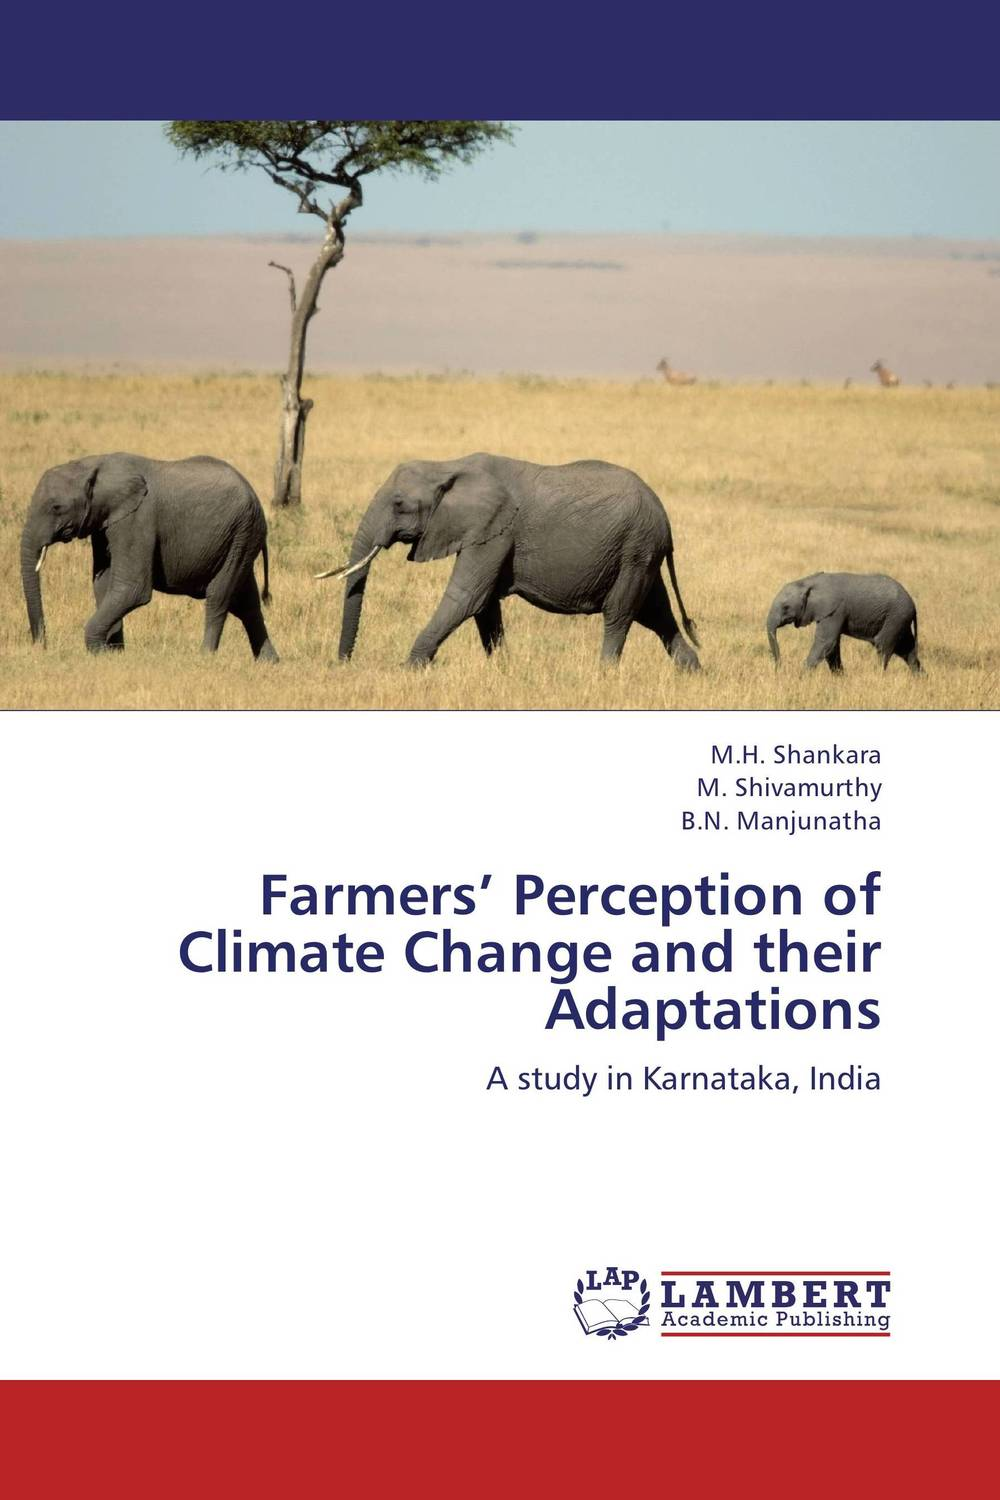 Farmers' Perception of Climate Change and their Adaptations spirituality and climate change